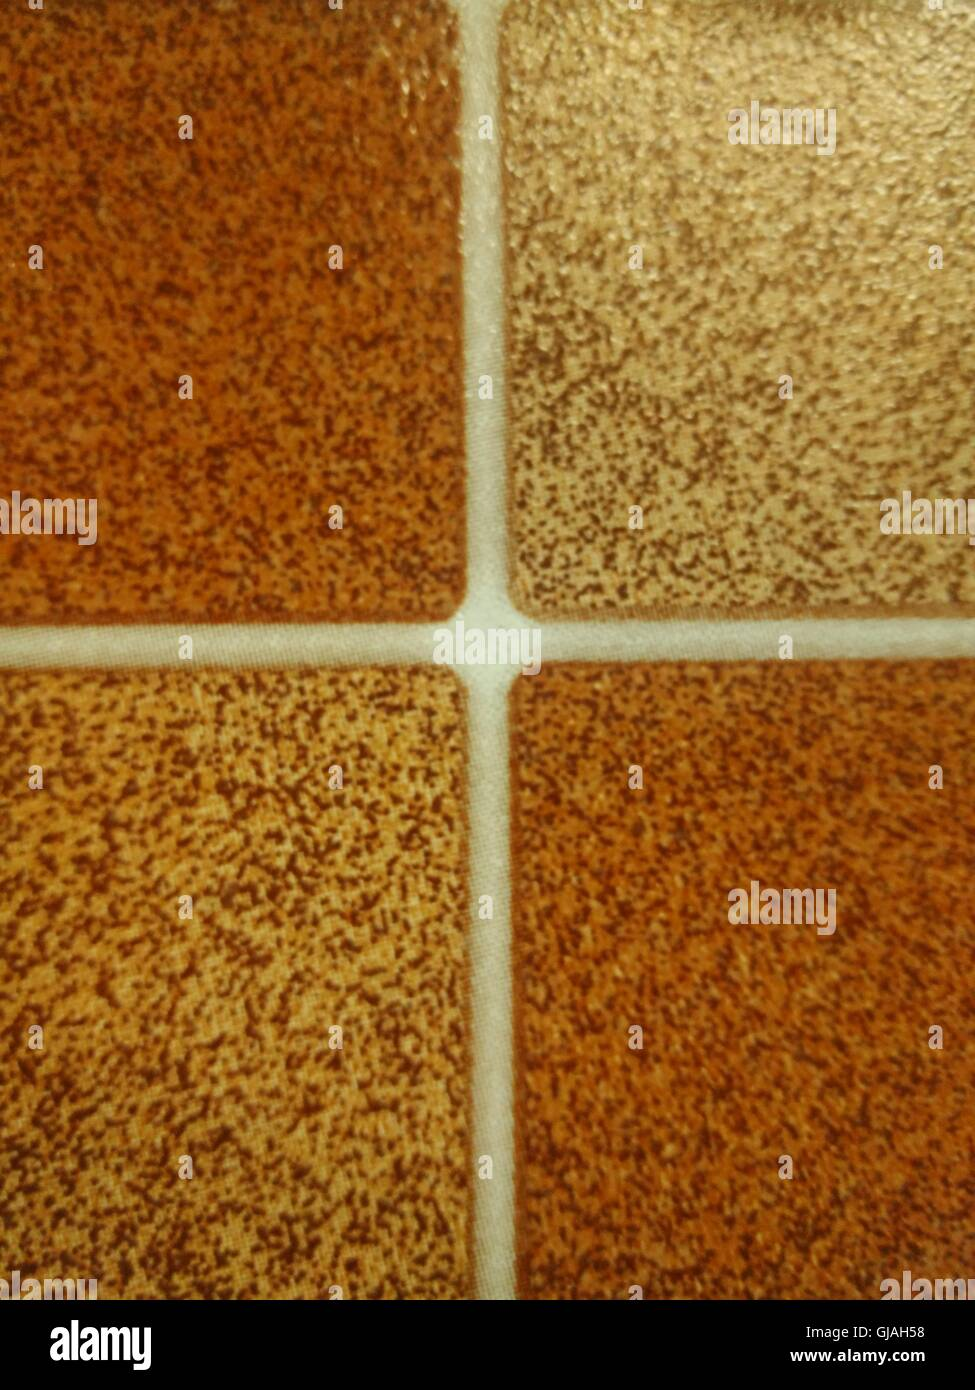 Brown and grainy ceramic tiles stock photo 114559012 alamy brown and grainy ceramic tiles dailygadgetfo Choice Image